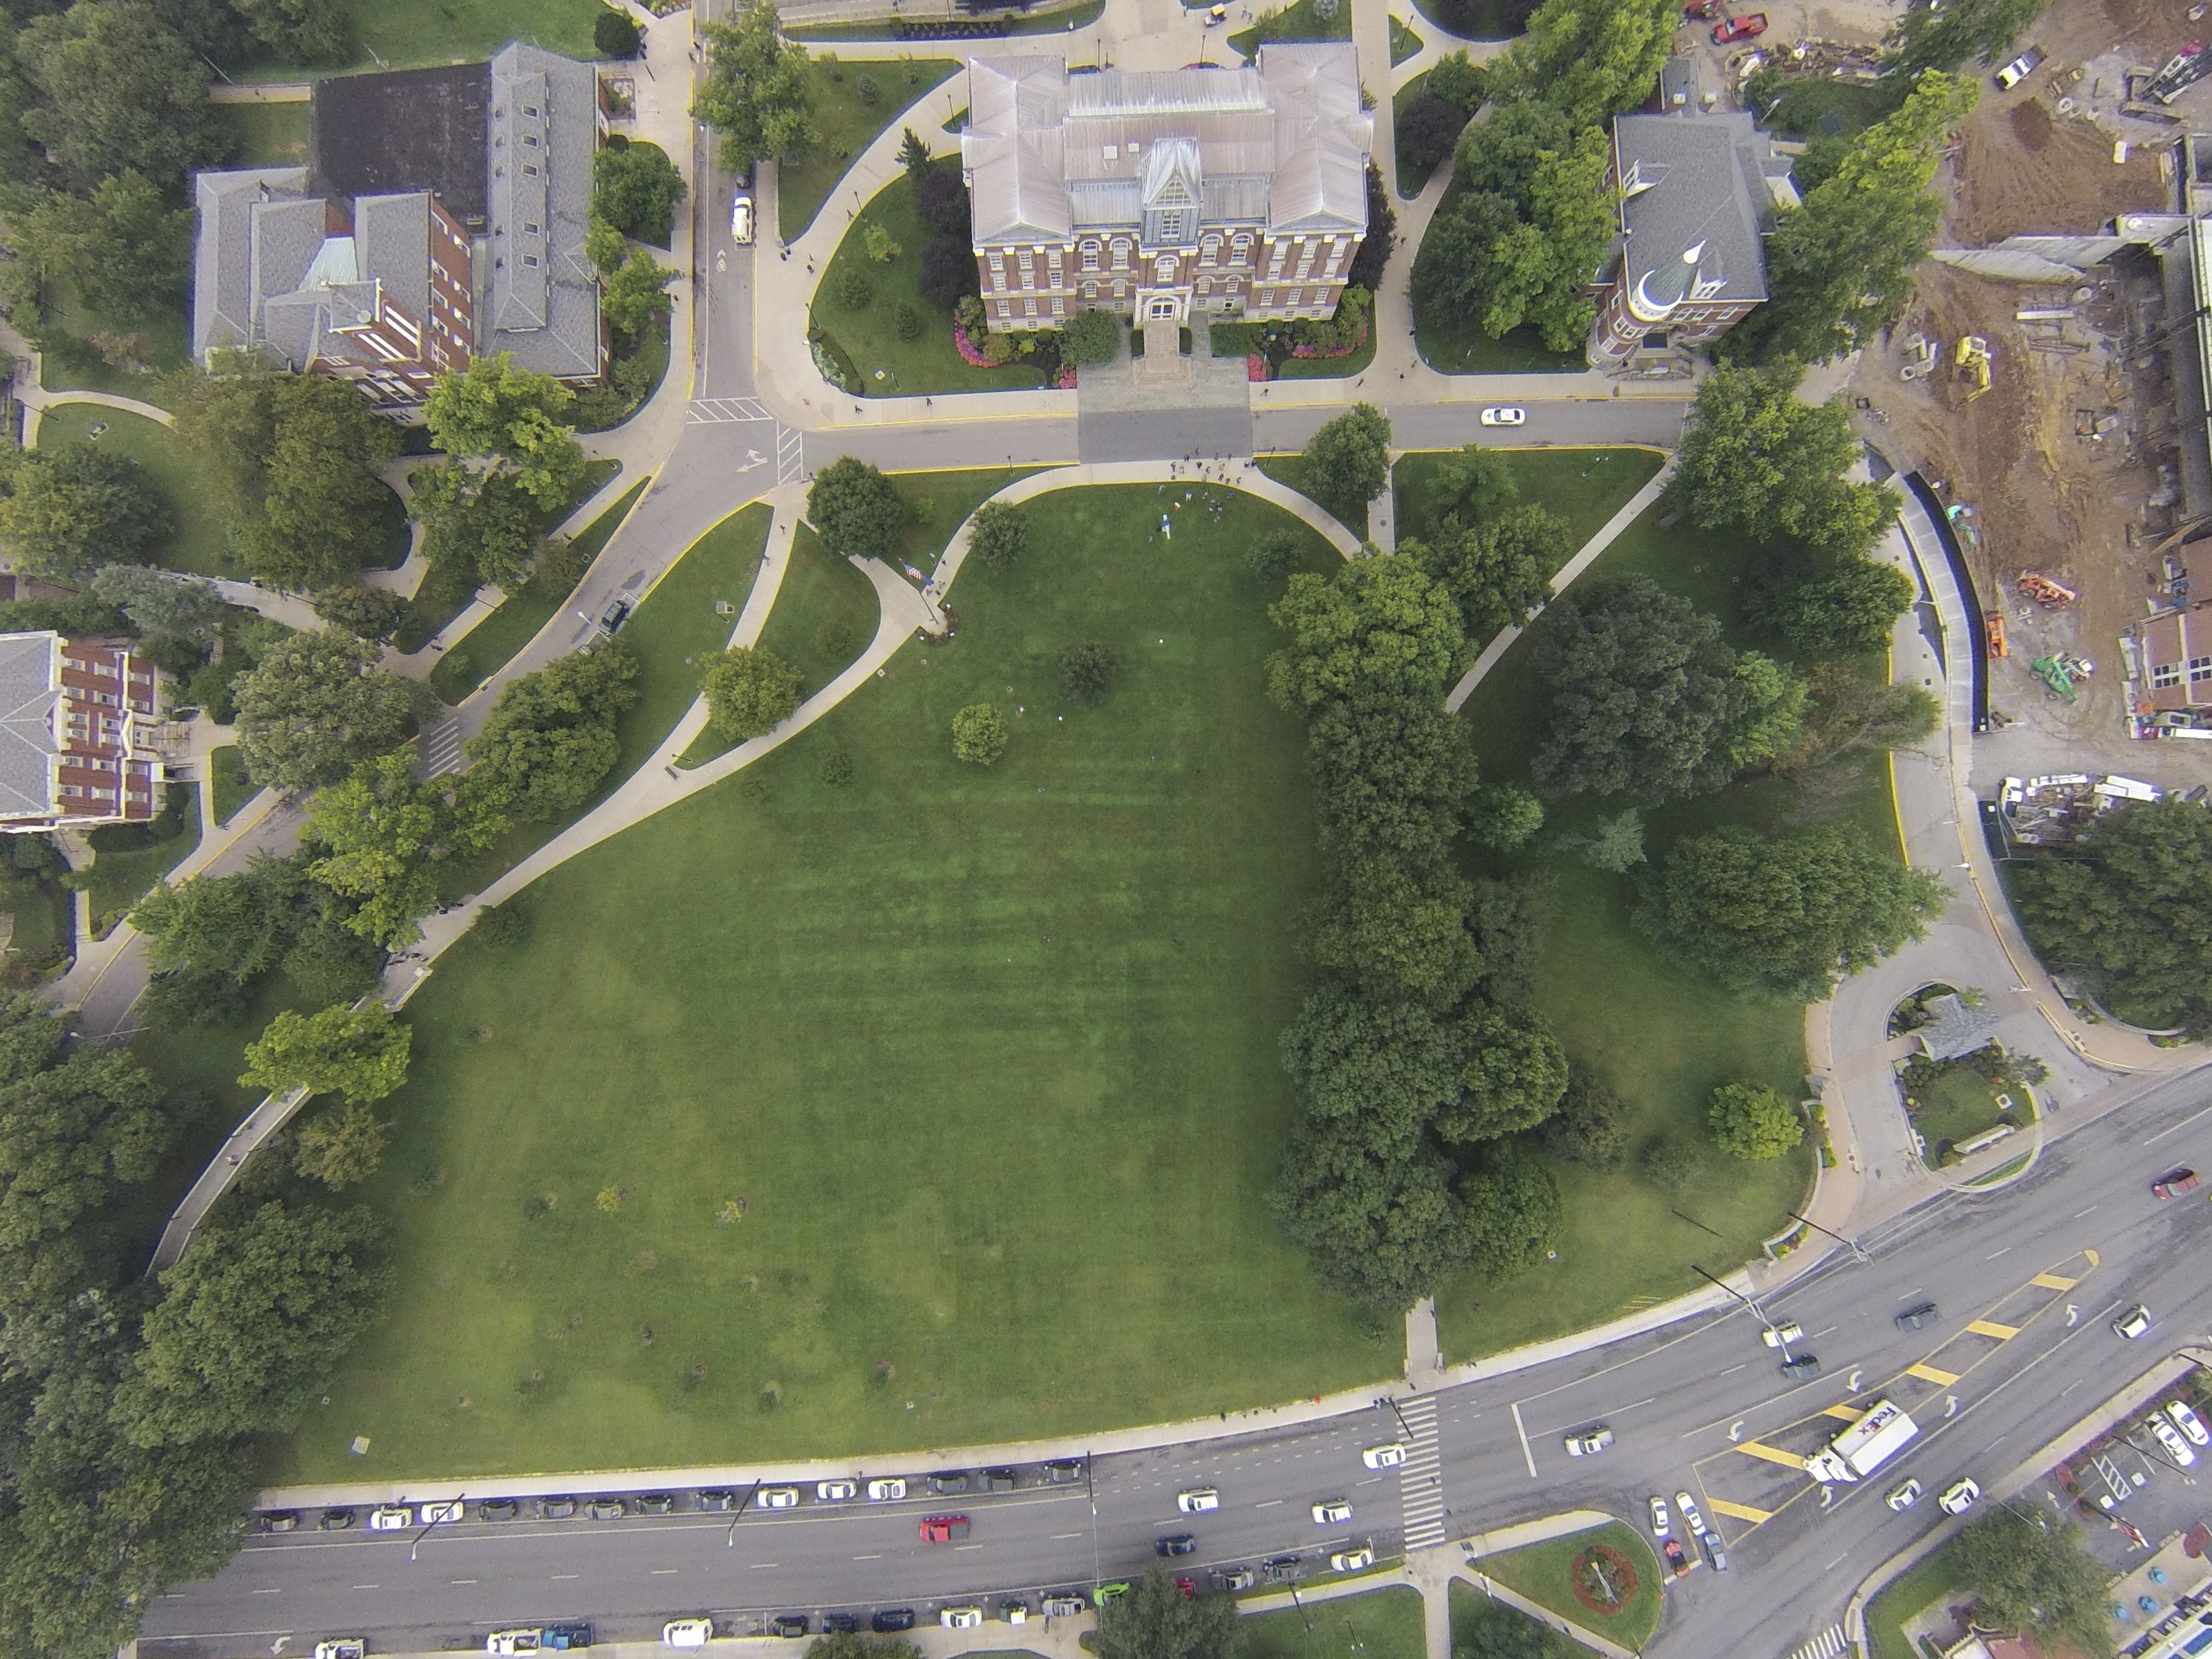 UKY Front Lawn